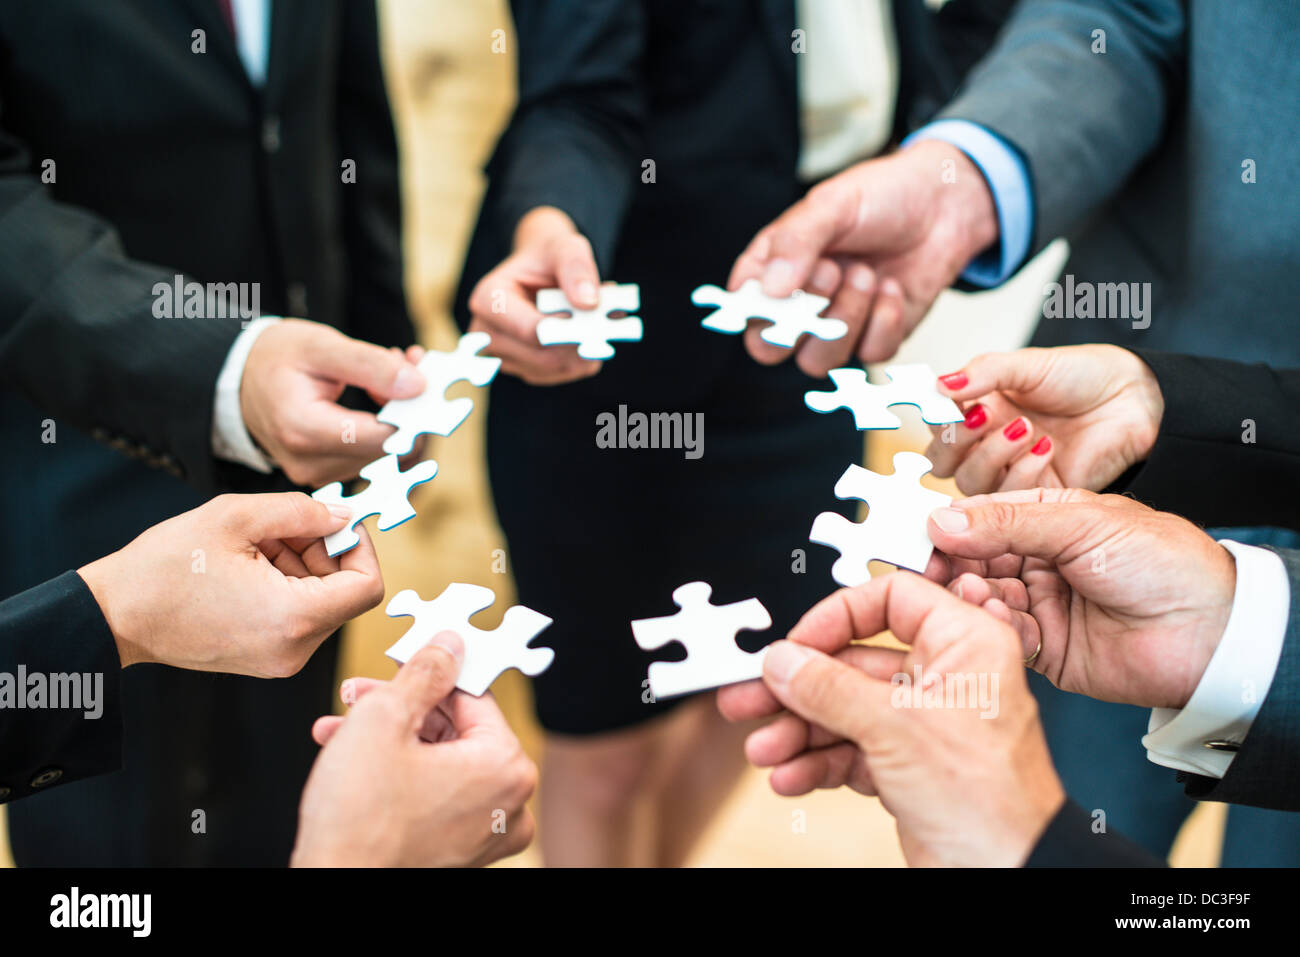 Teamwork - a group of eight business people assembling a jigsaw puzzle - representing team support and help concepts - Stock Image